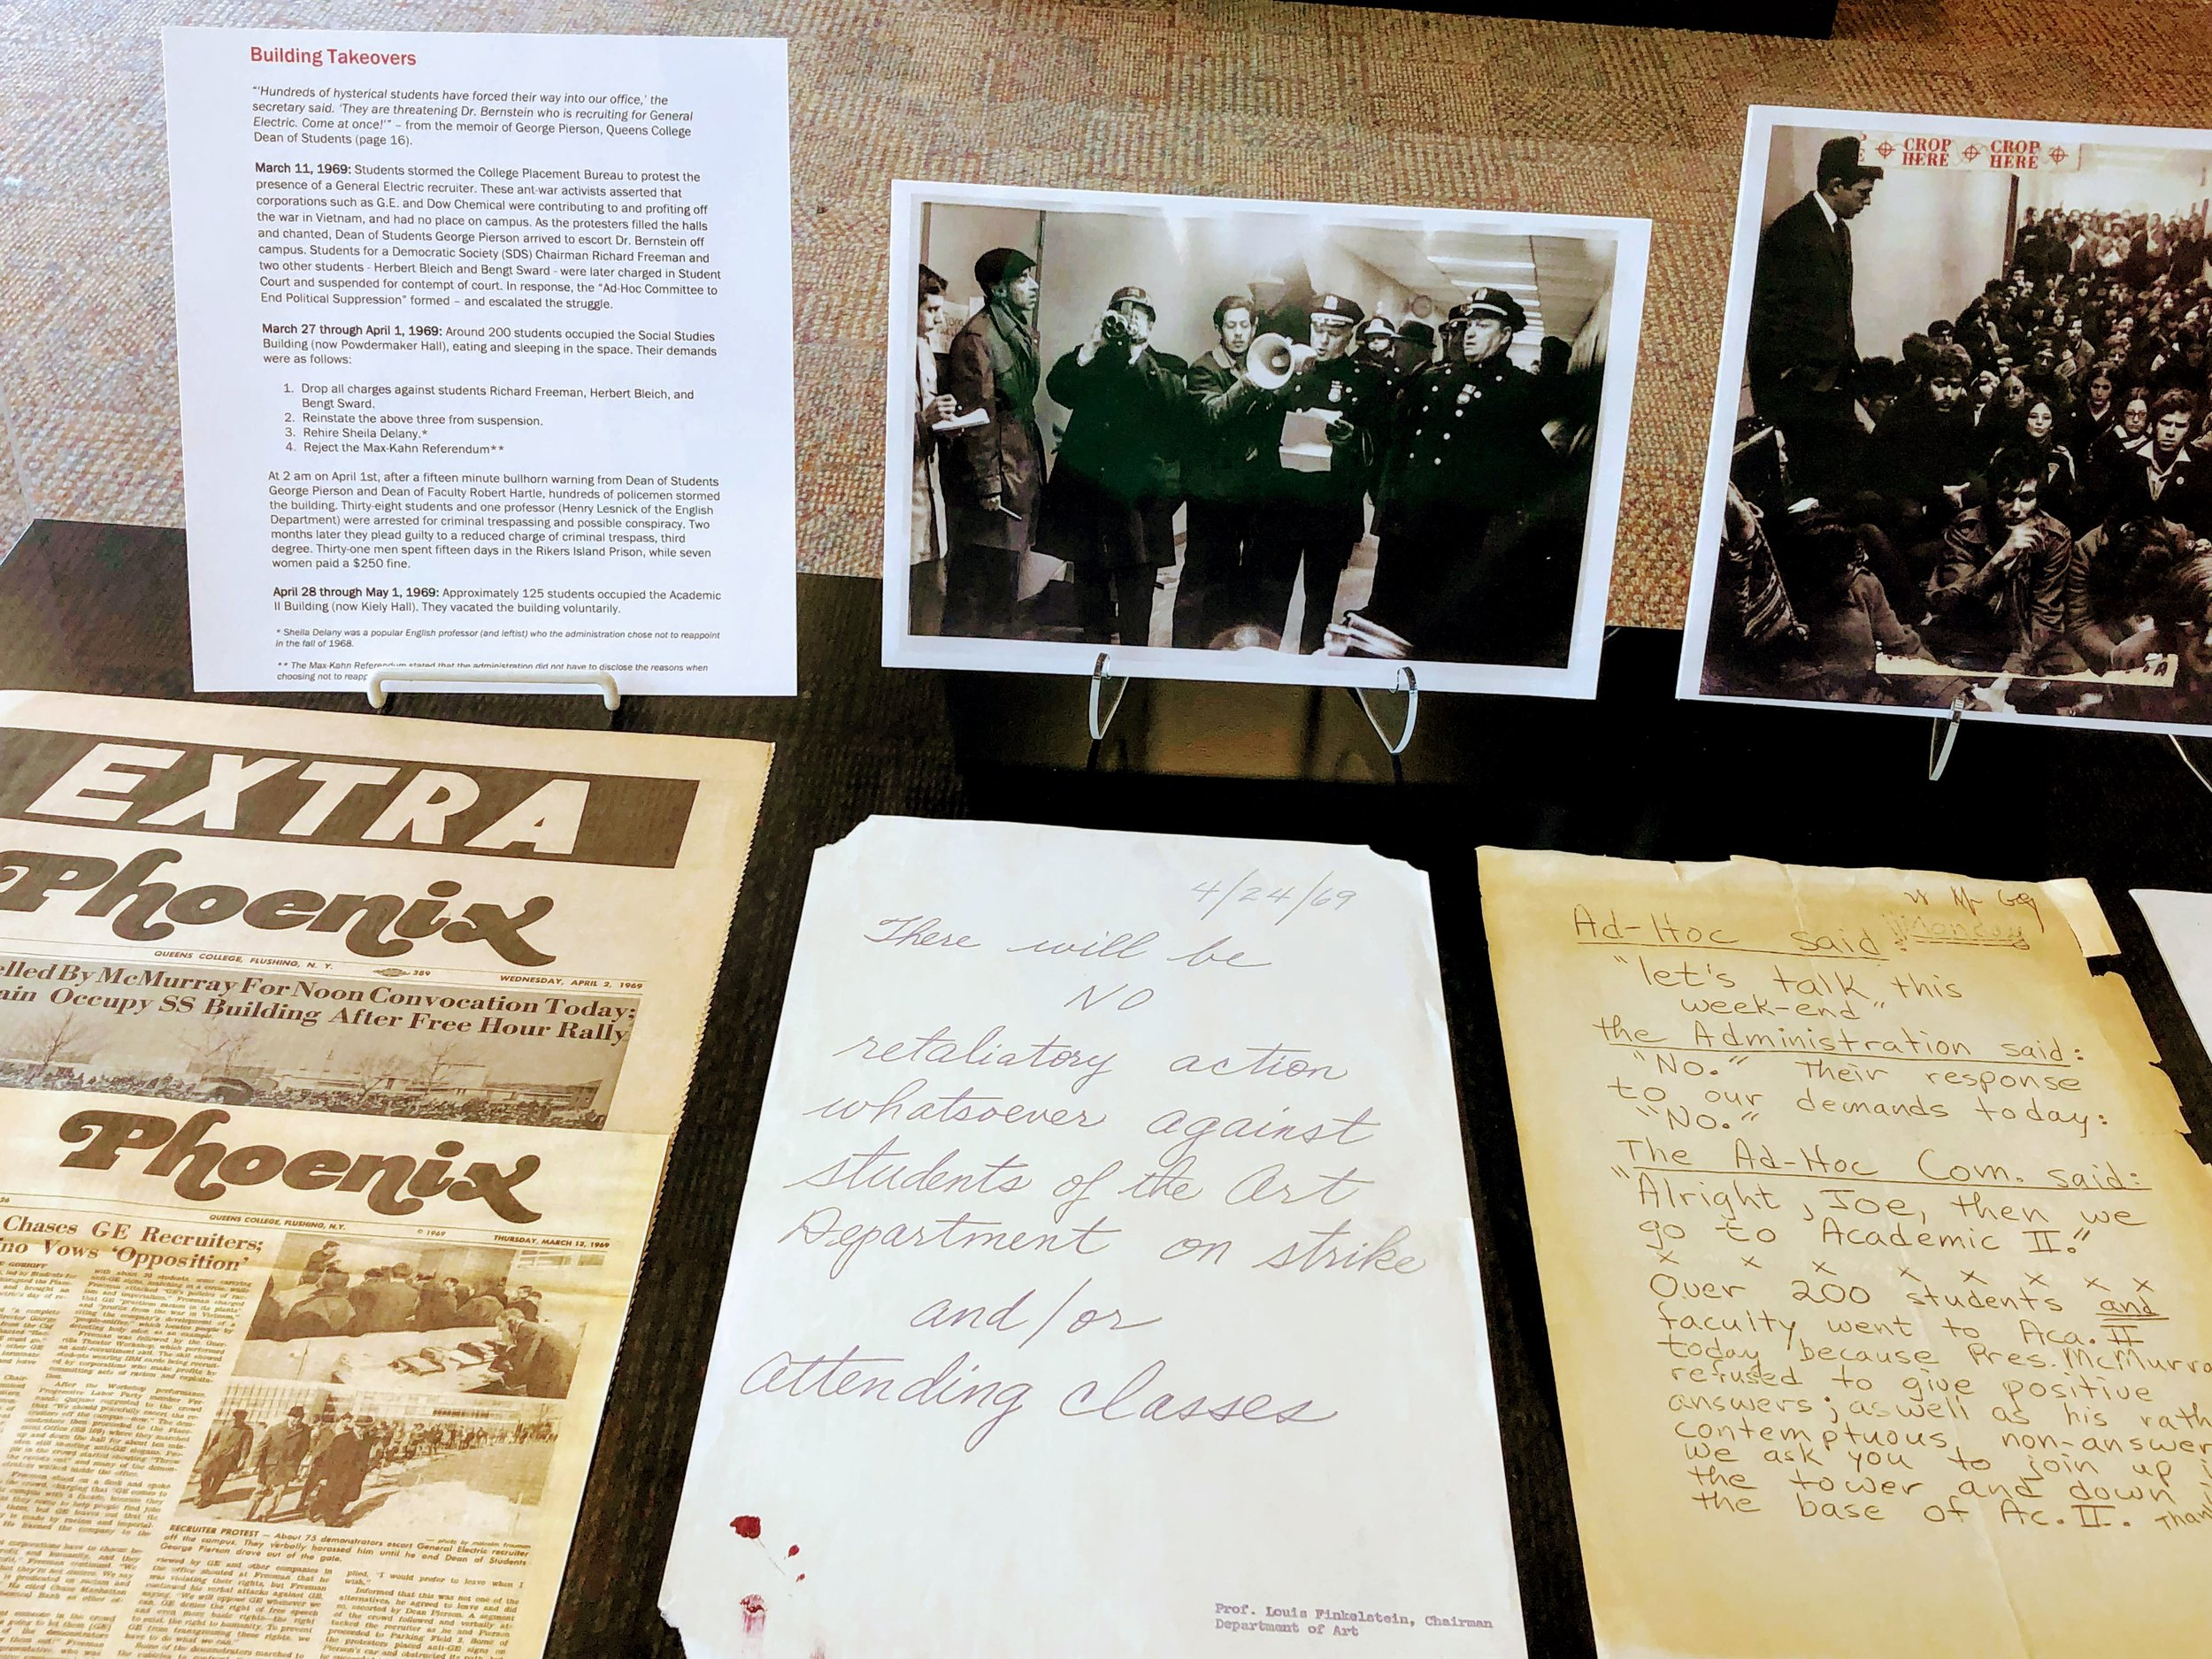 An exhibit at Queens College details how the university was the site of student dissent throughout the tumultuous 1960s. Photos courtesy of Queens College.